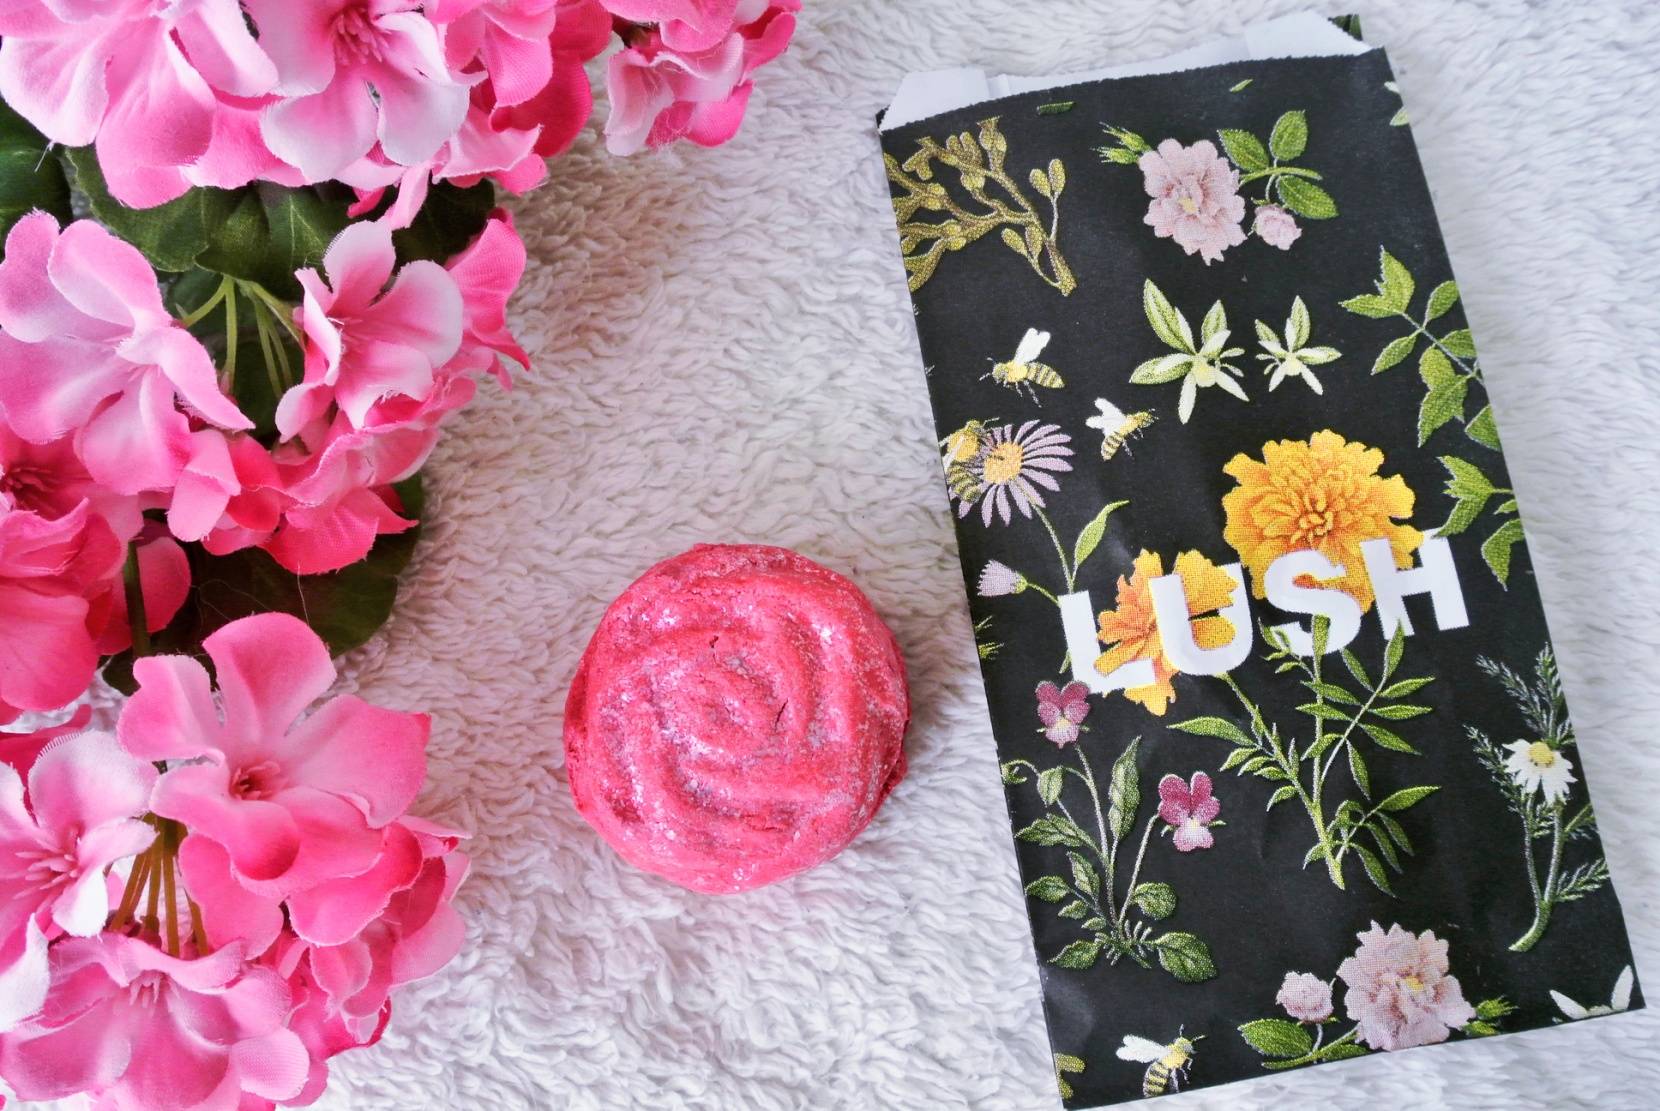 Lush Cosmetics Spring Mini-Haul // Rose Jam Bubbleroon